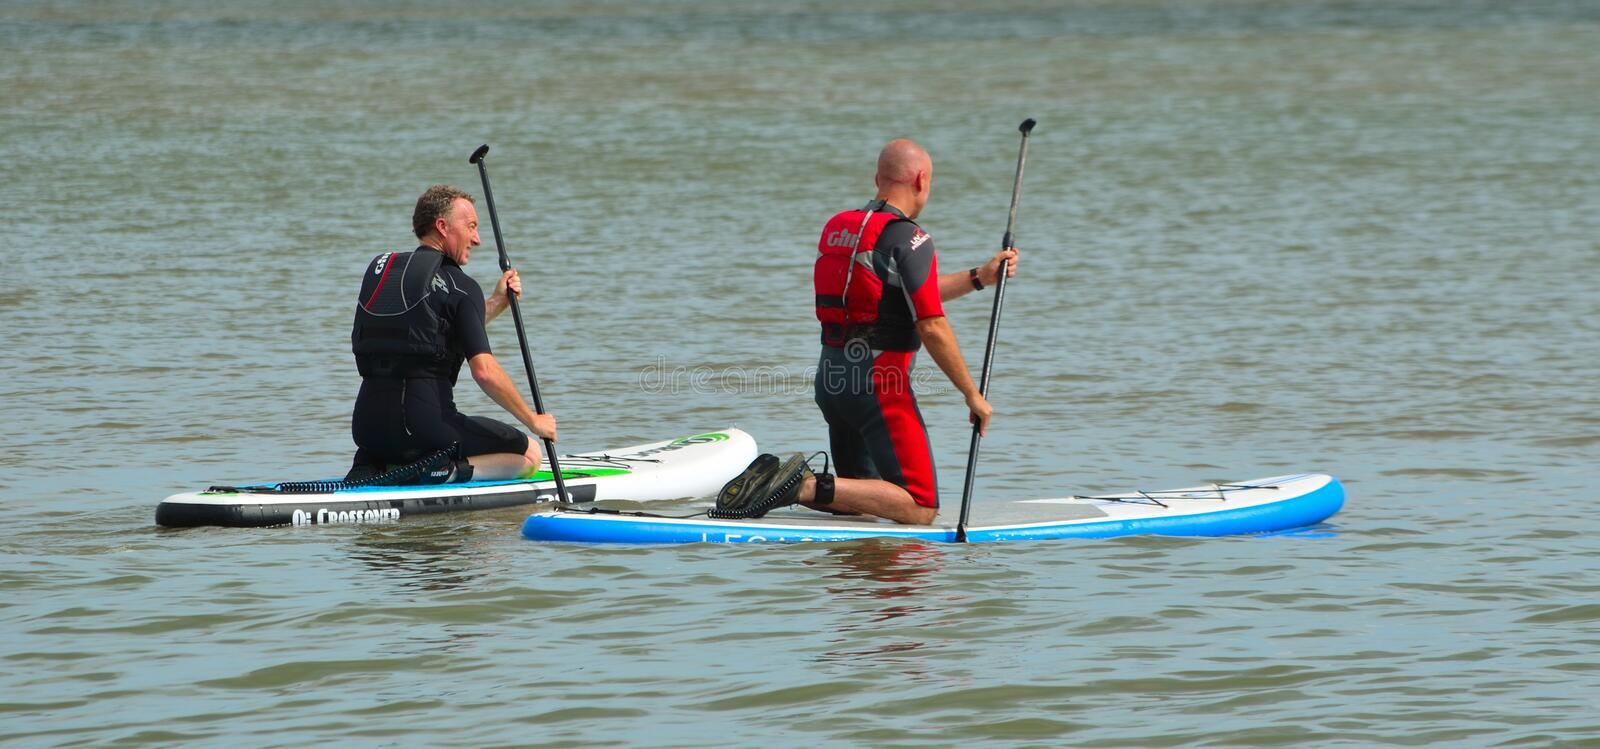 Men on inflatable paddle boards on the north sea. royalty free stock images